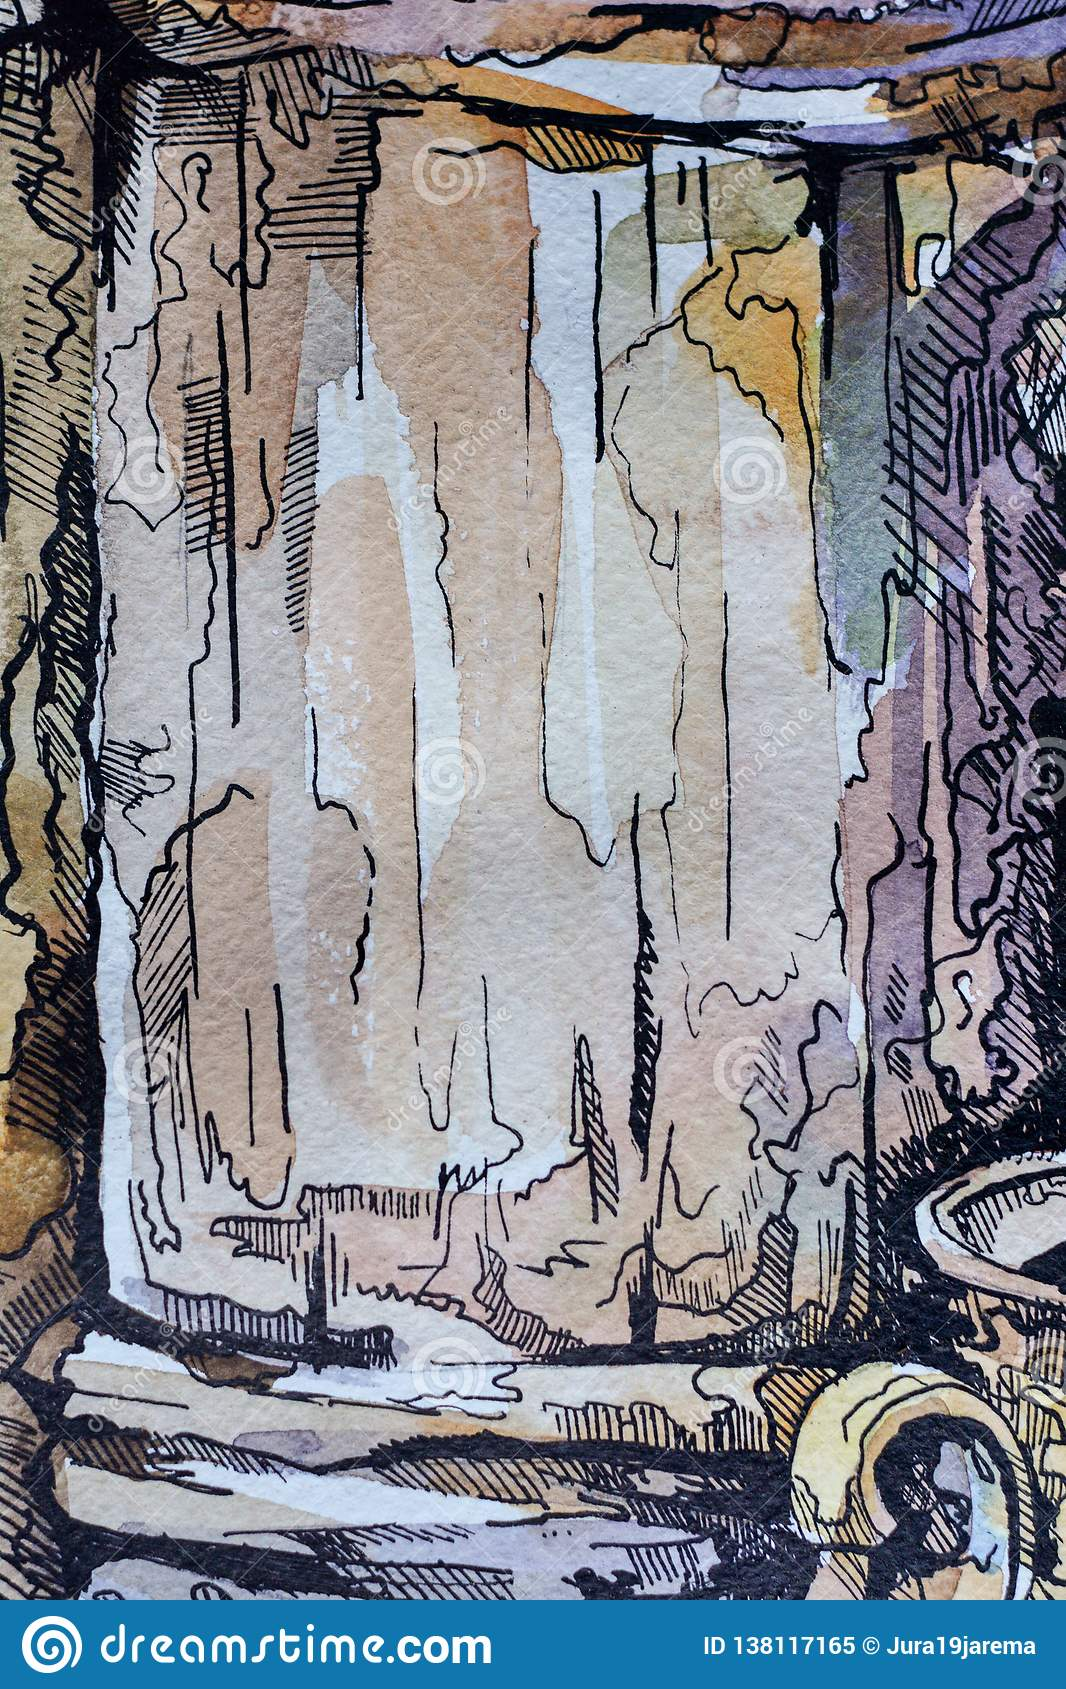 Abstract background oil painting and pen, hand-painted texture, splashes, drops of paint, paint smears